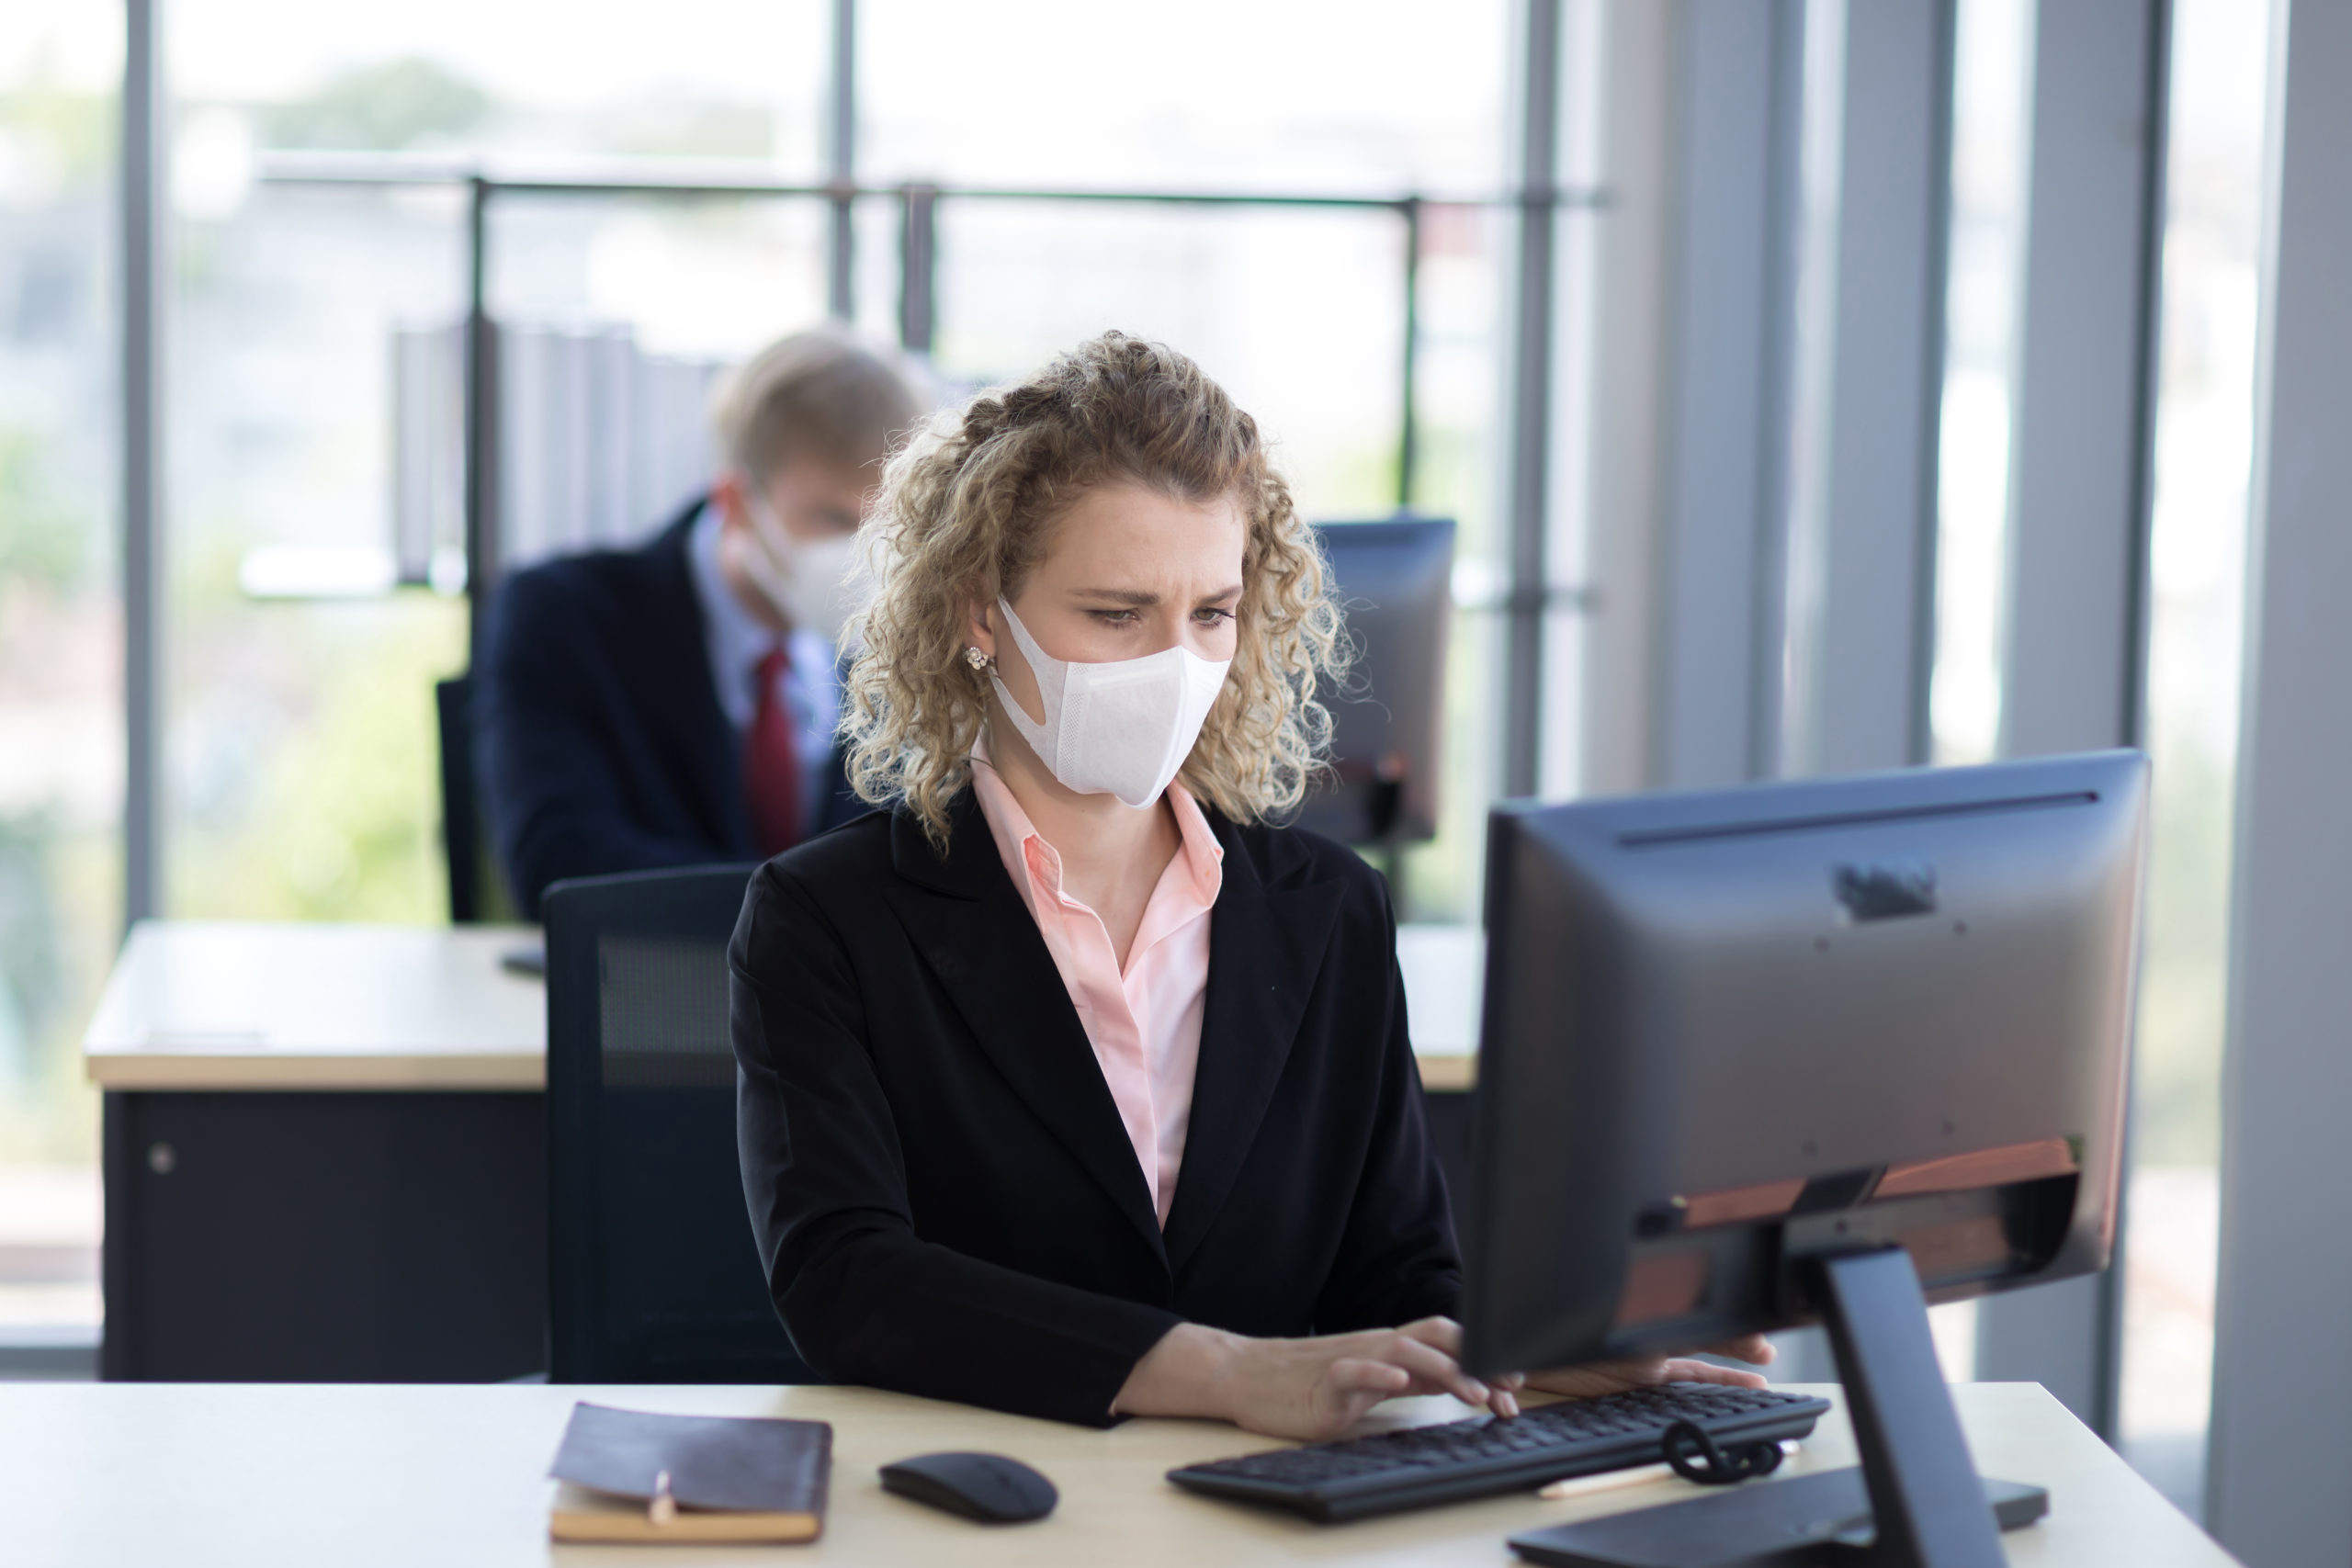 this is a photo of a woman working at a computer in an office wearing a protective face mask